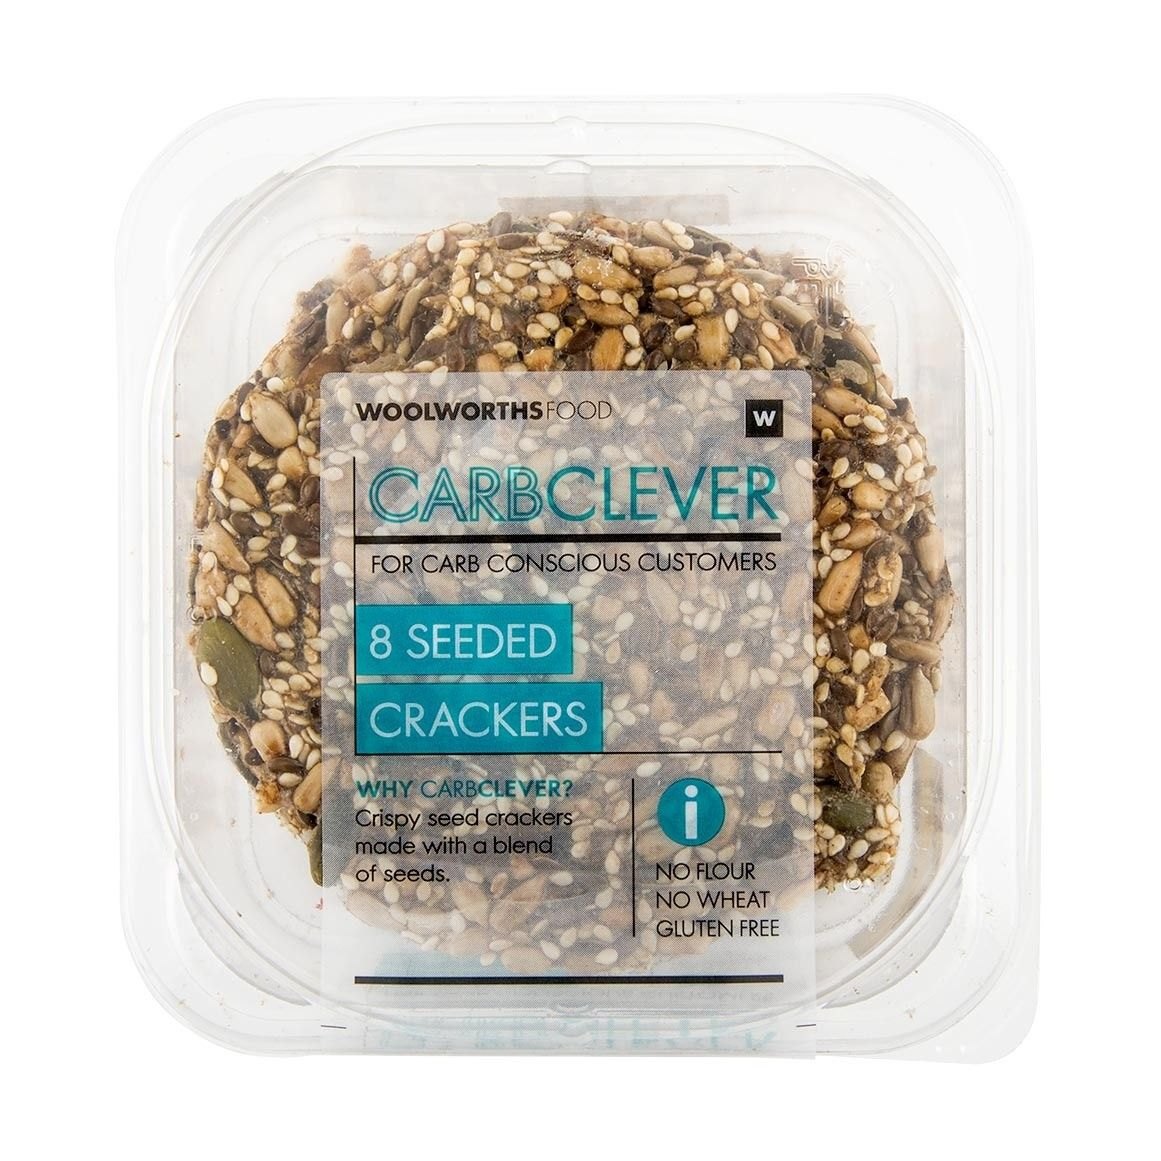 Carbclever seeded crackers 8pk crackers seeds gluten free